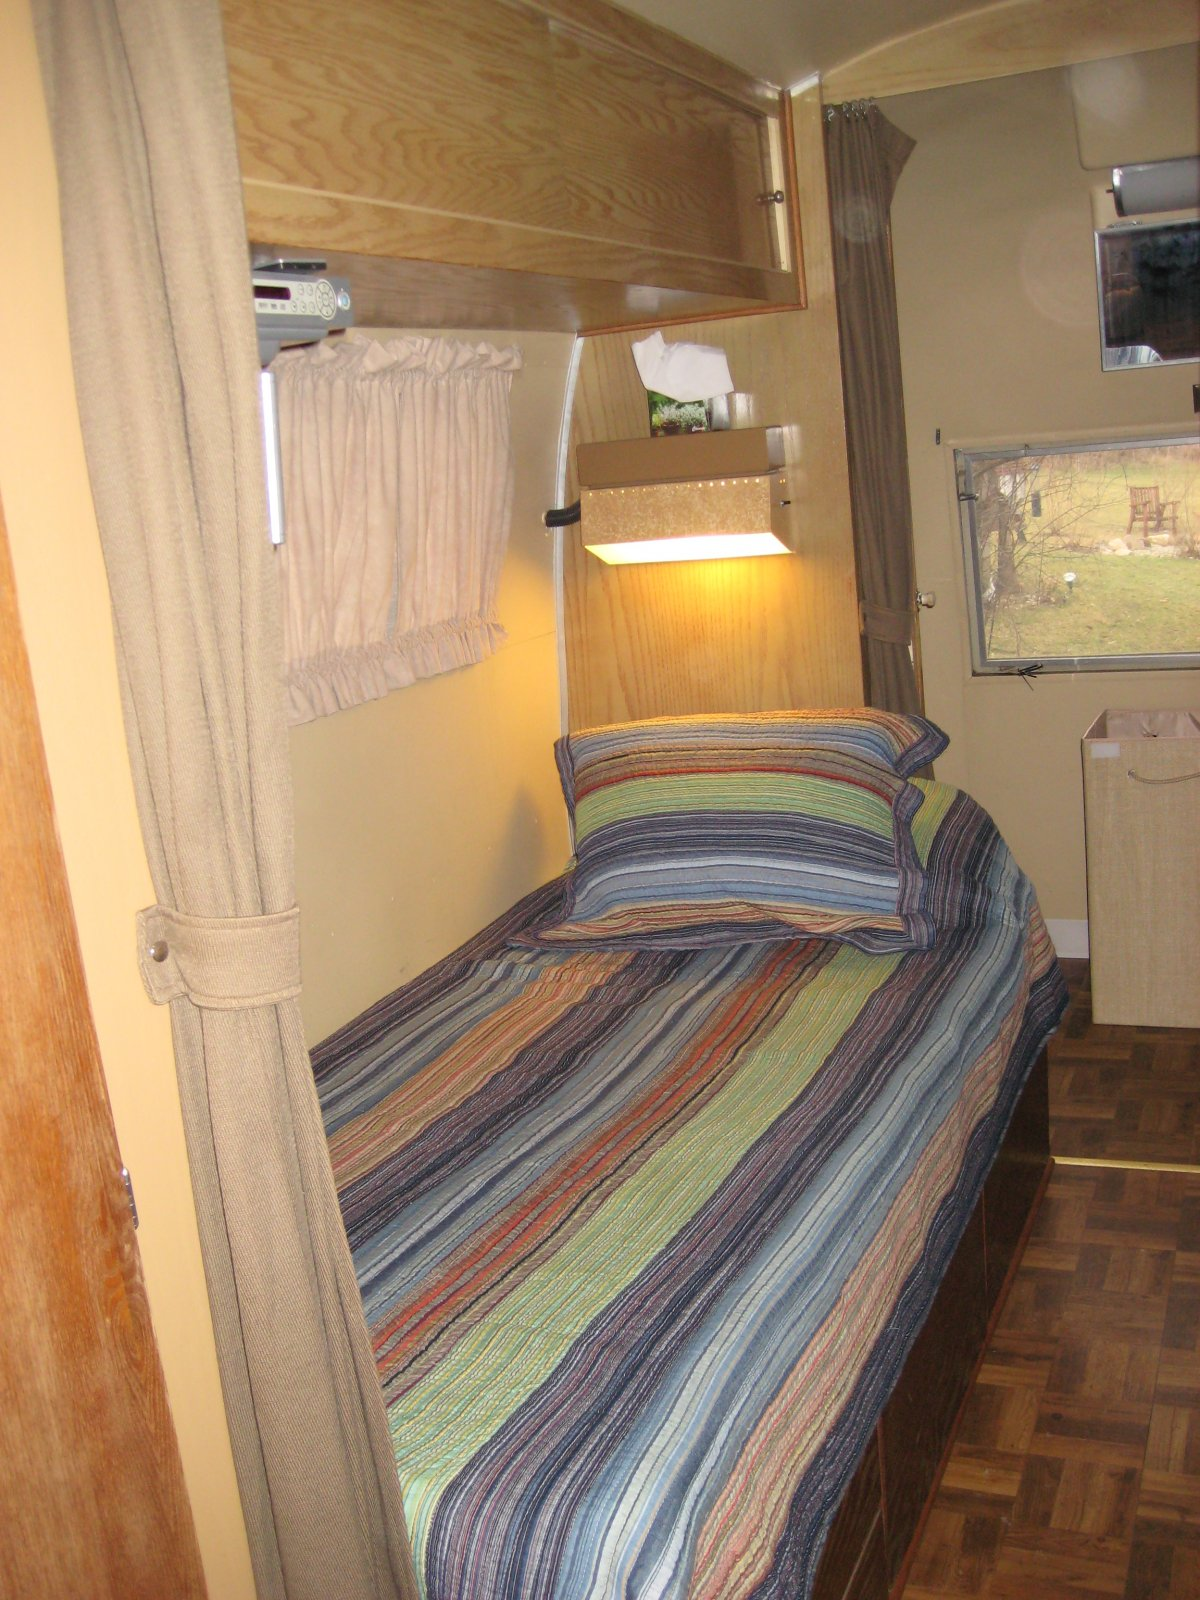 Click image for larger version  Name:Airstream 007.jpg Views:81 Size:343.9 KB ID:98300